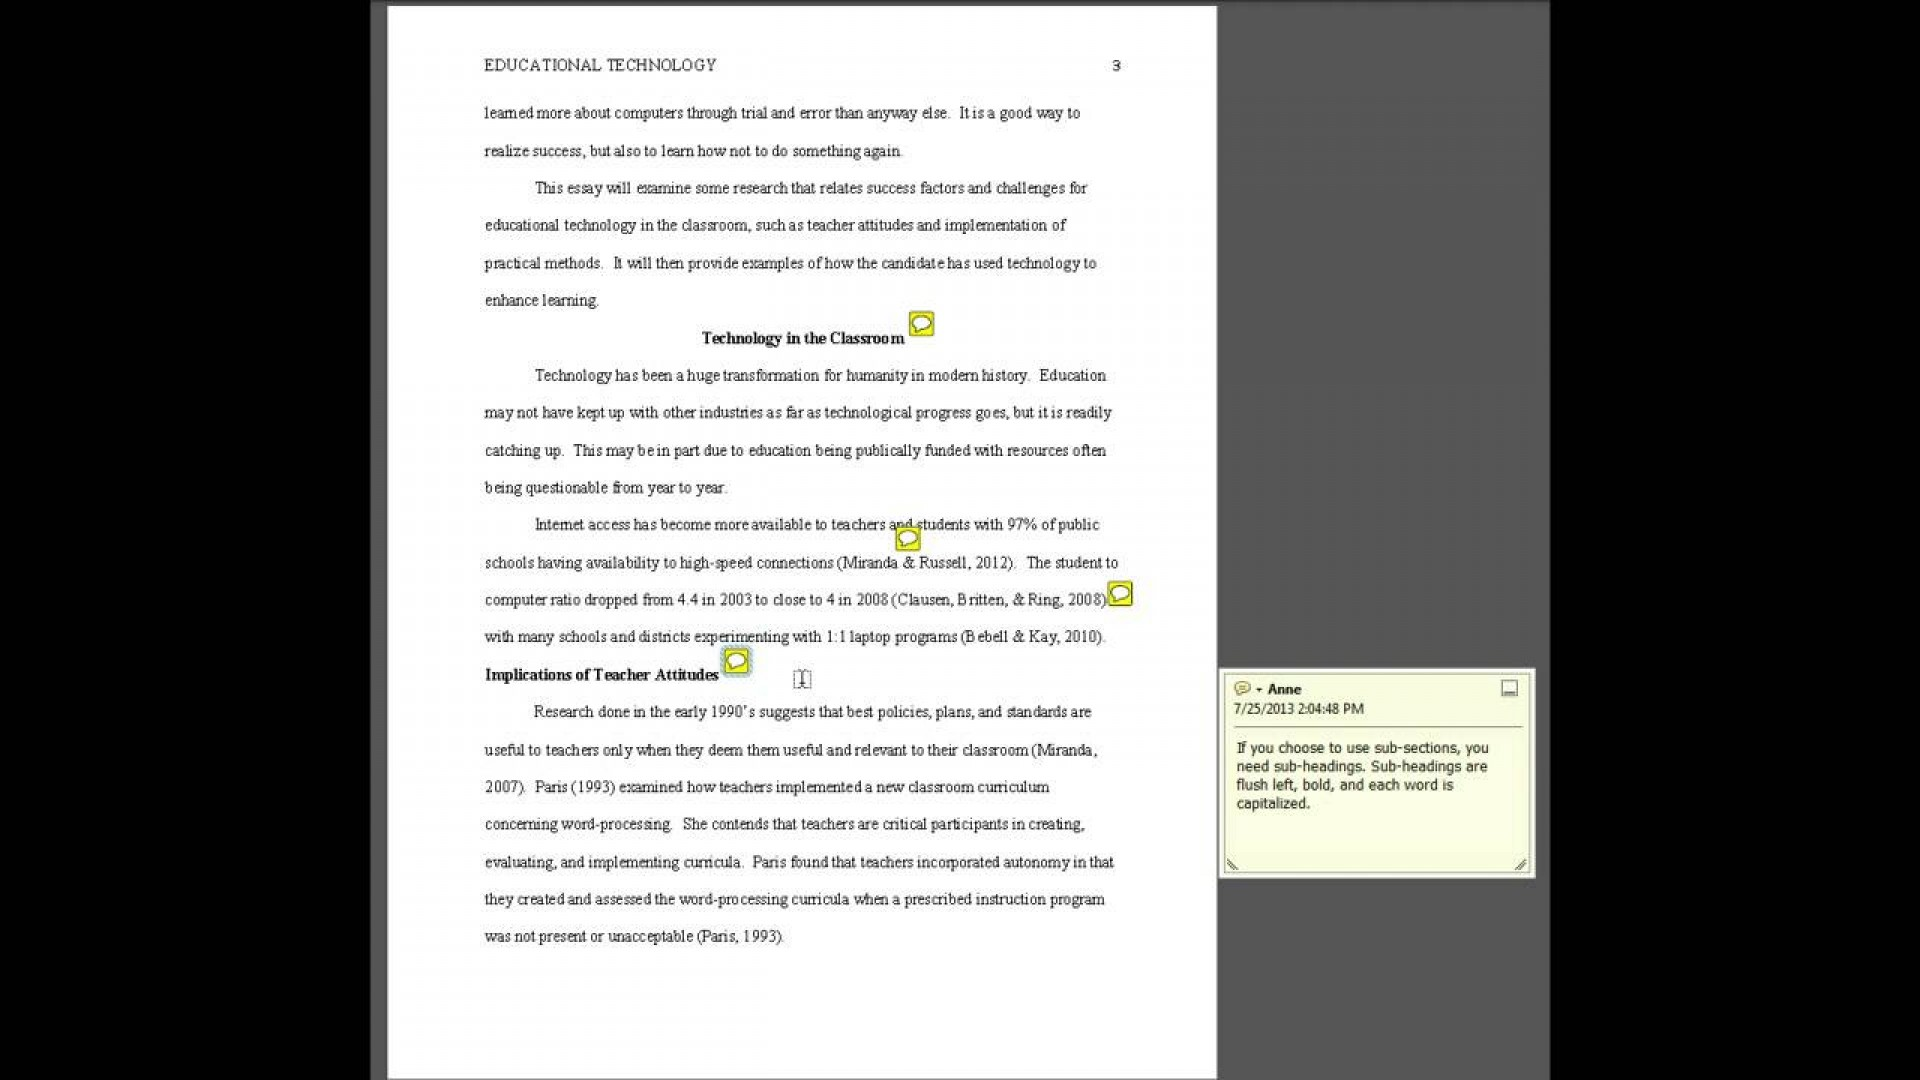 006 Maxresdefault Apa Research Paper Example Unusual Youtube 1920